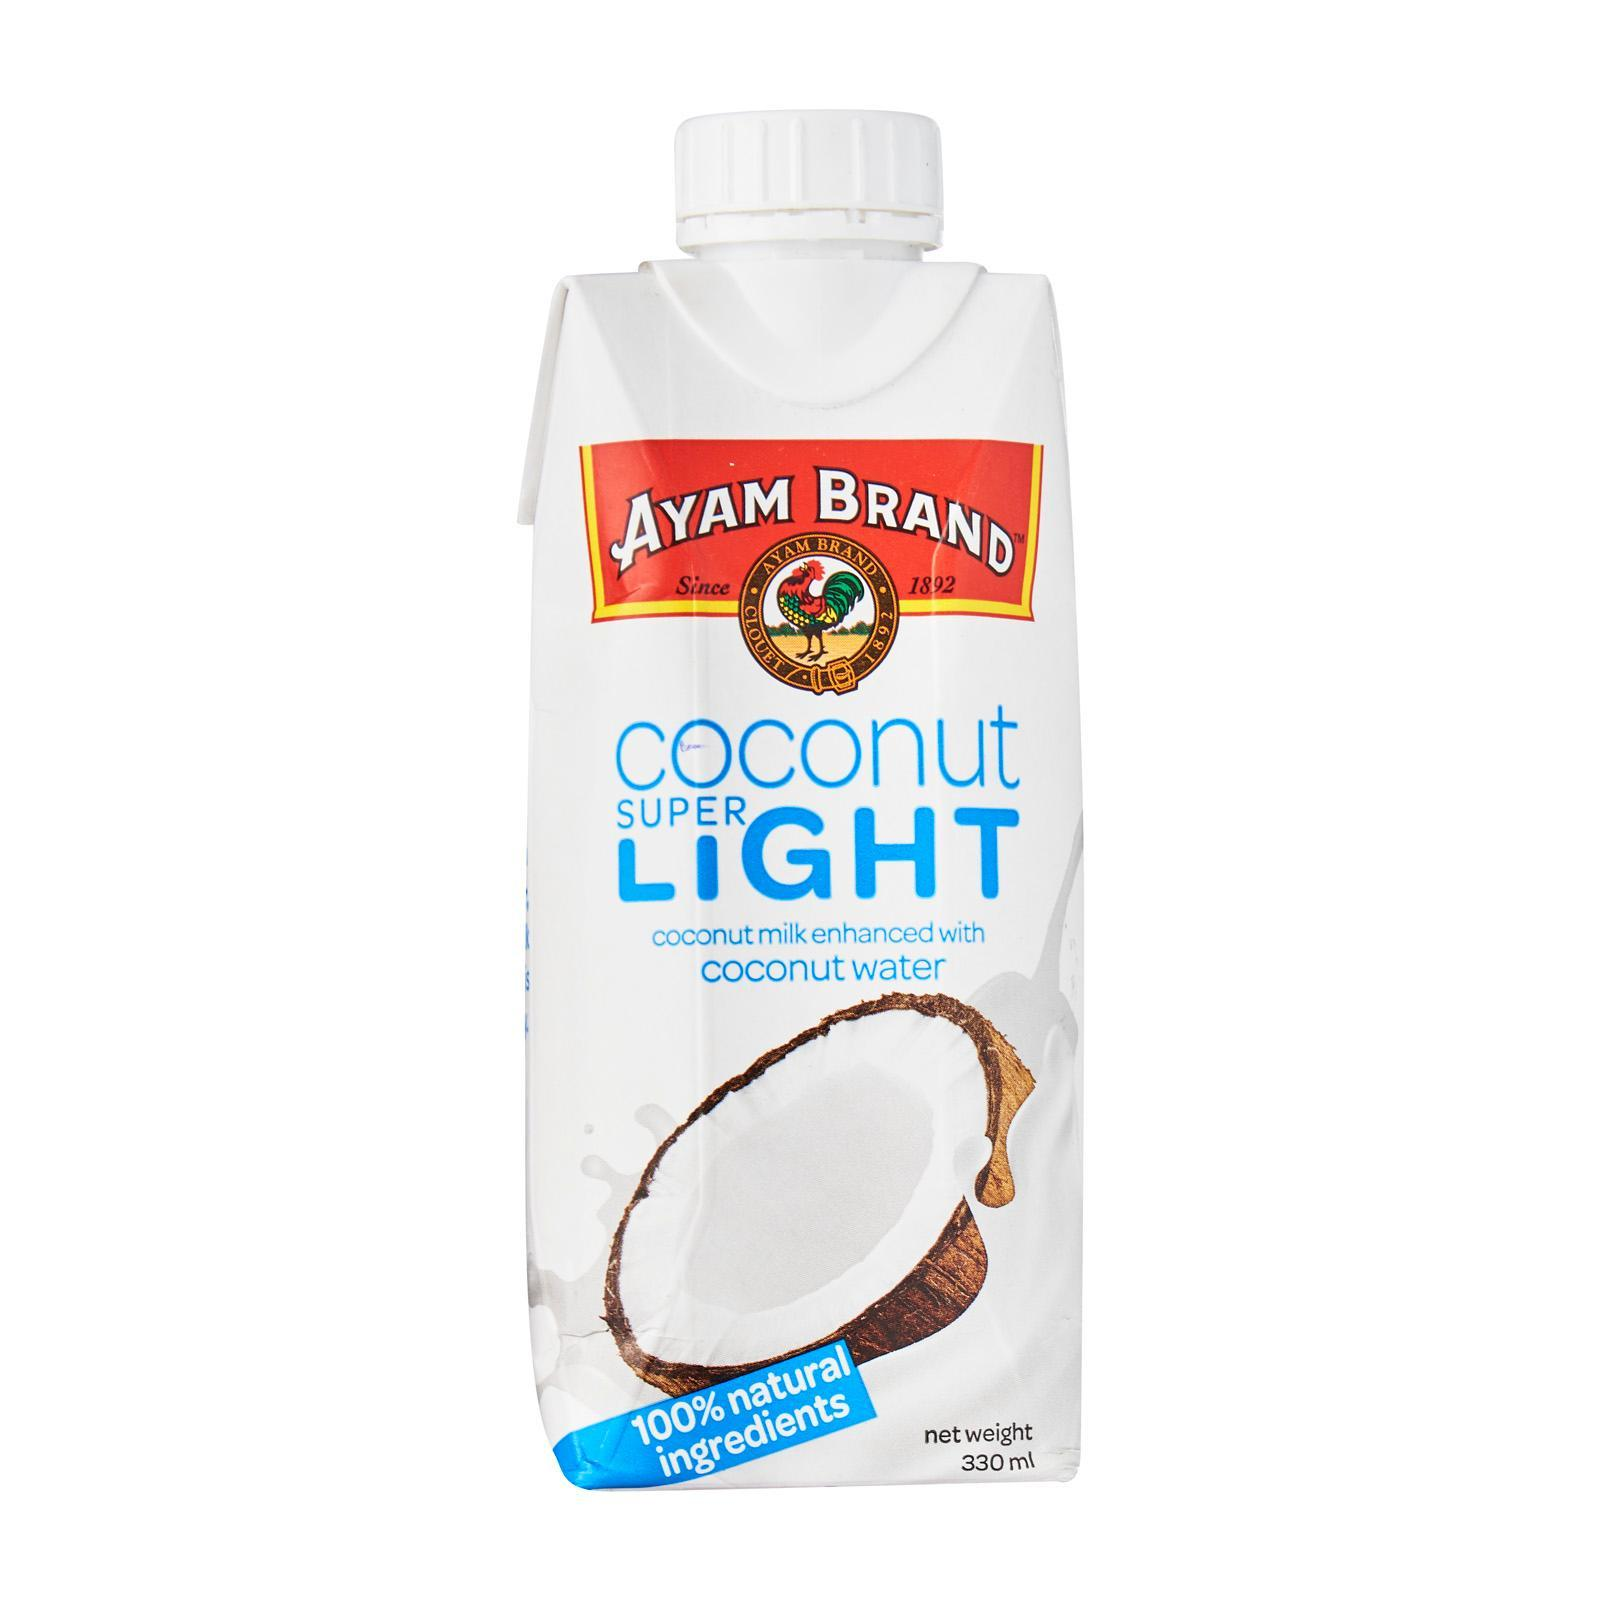 Ayam Brand Coconut Milk Super Light (5 Percent Fat Enhanced With Coconut Water)